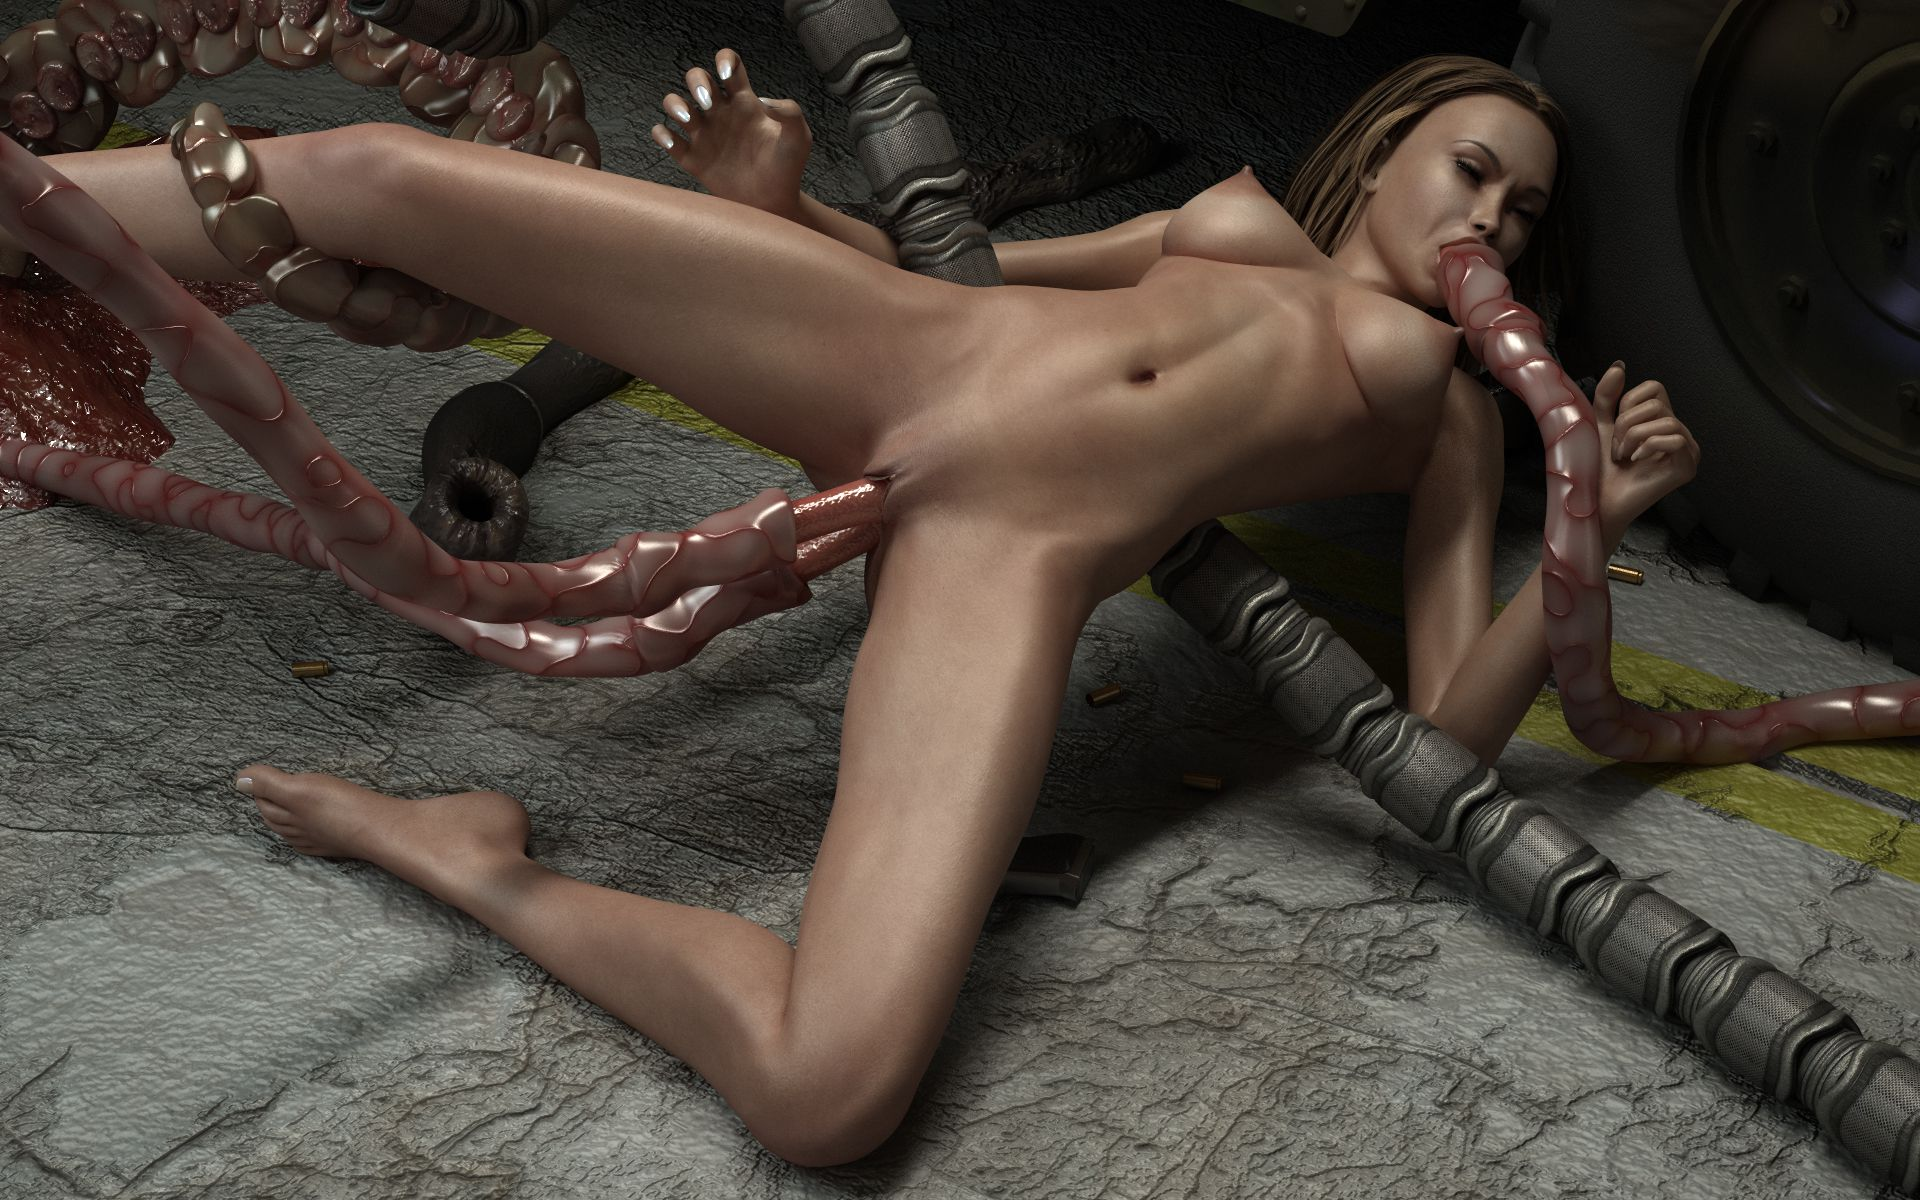 Monster hd xxx download erotic photo